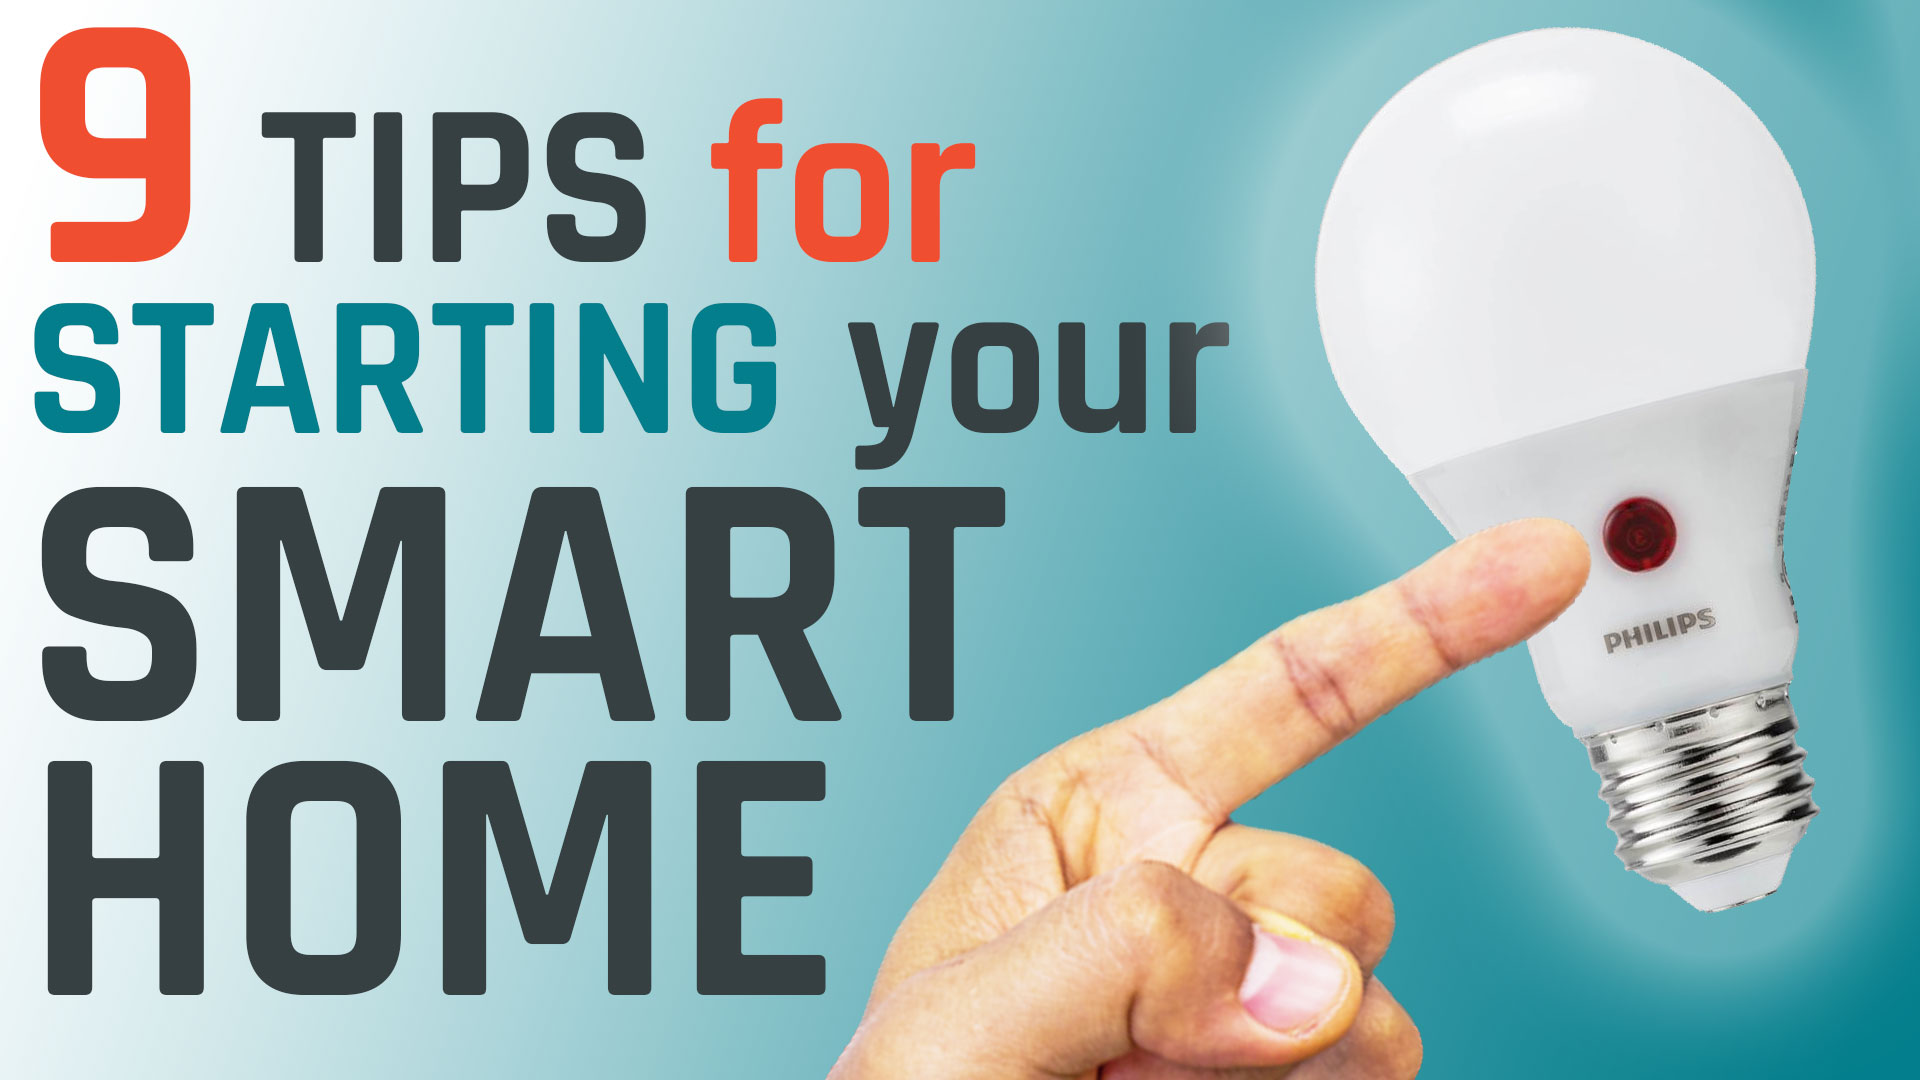 Smart Homes: 9 Tips for Starting or Upgrading Your Smart Home